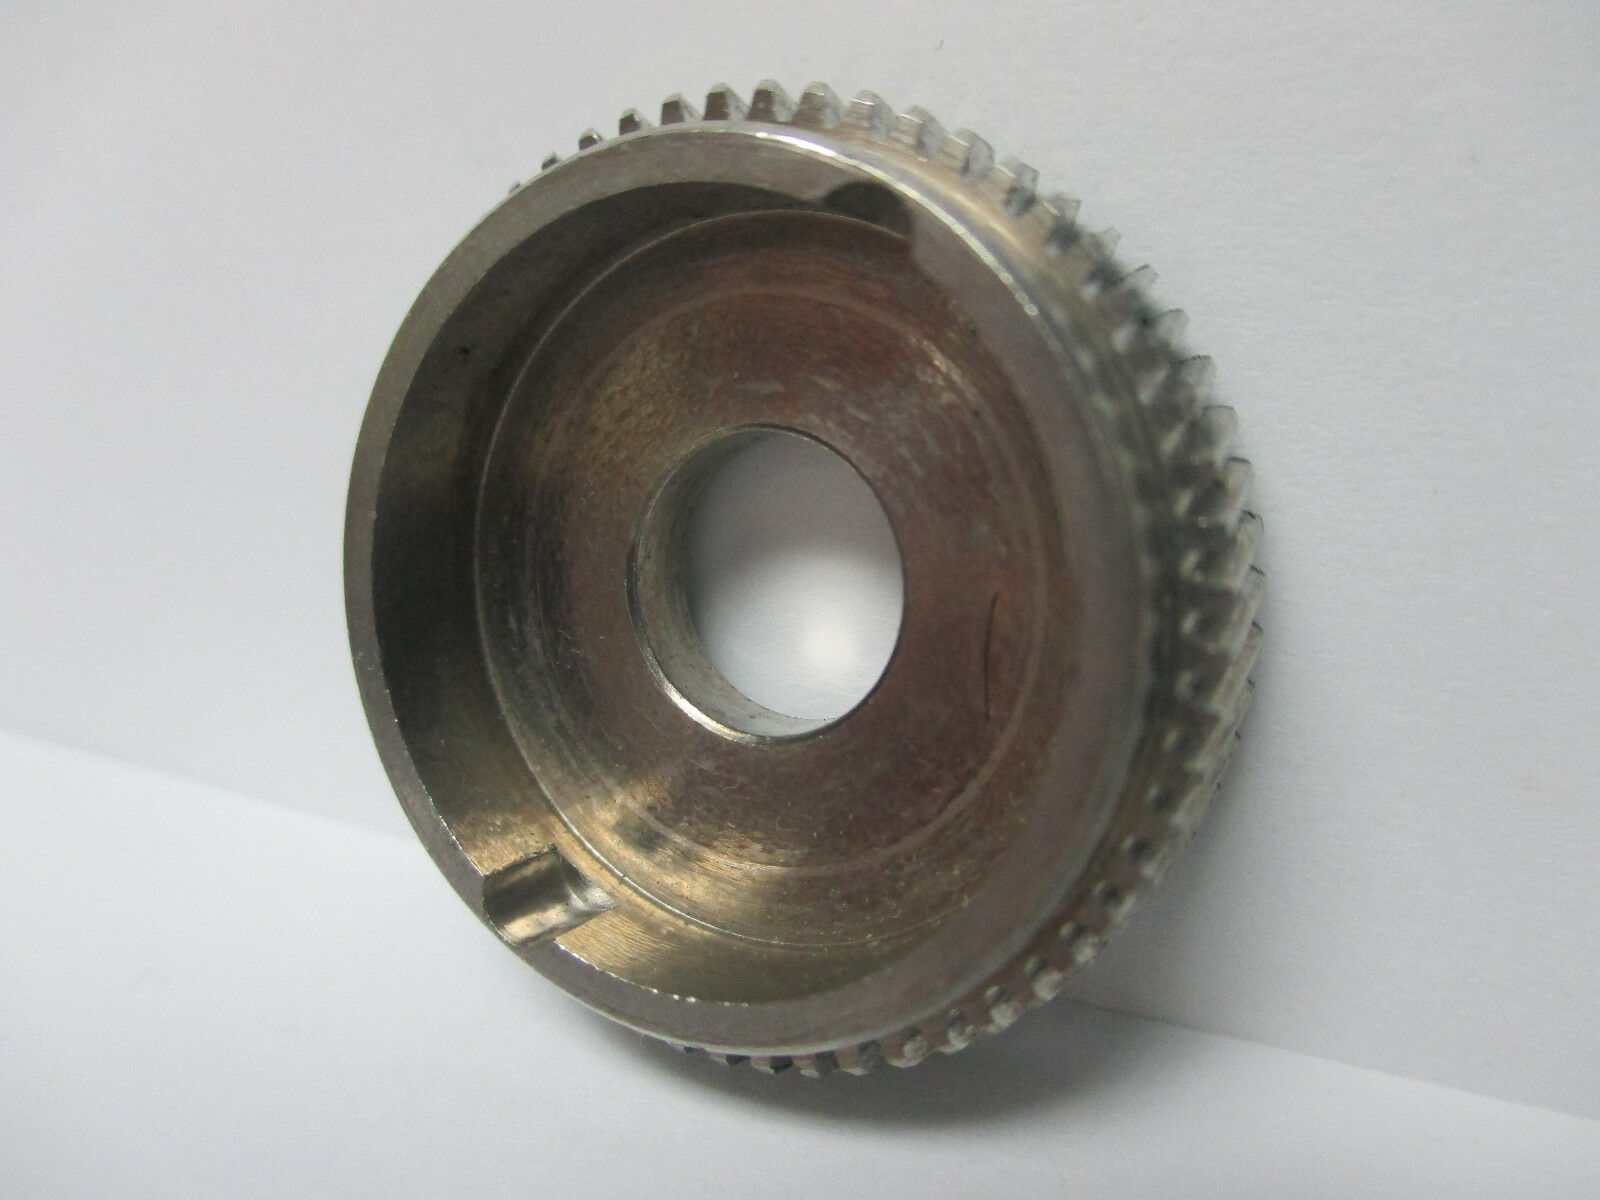 NEW NEWELL CONVENTIONAL REEL PART - 344 5 - Main Gear